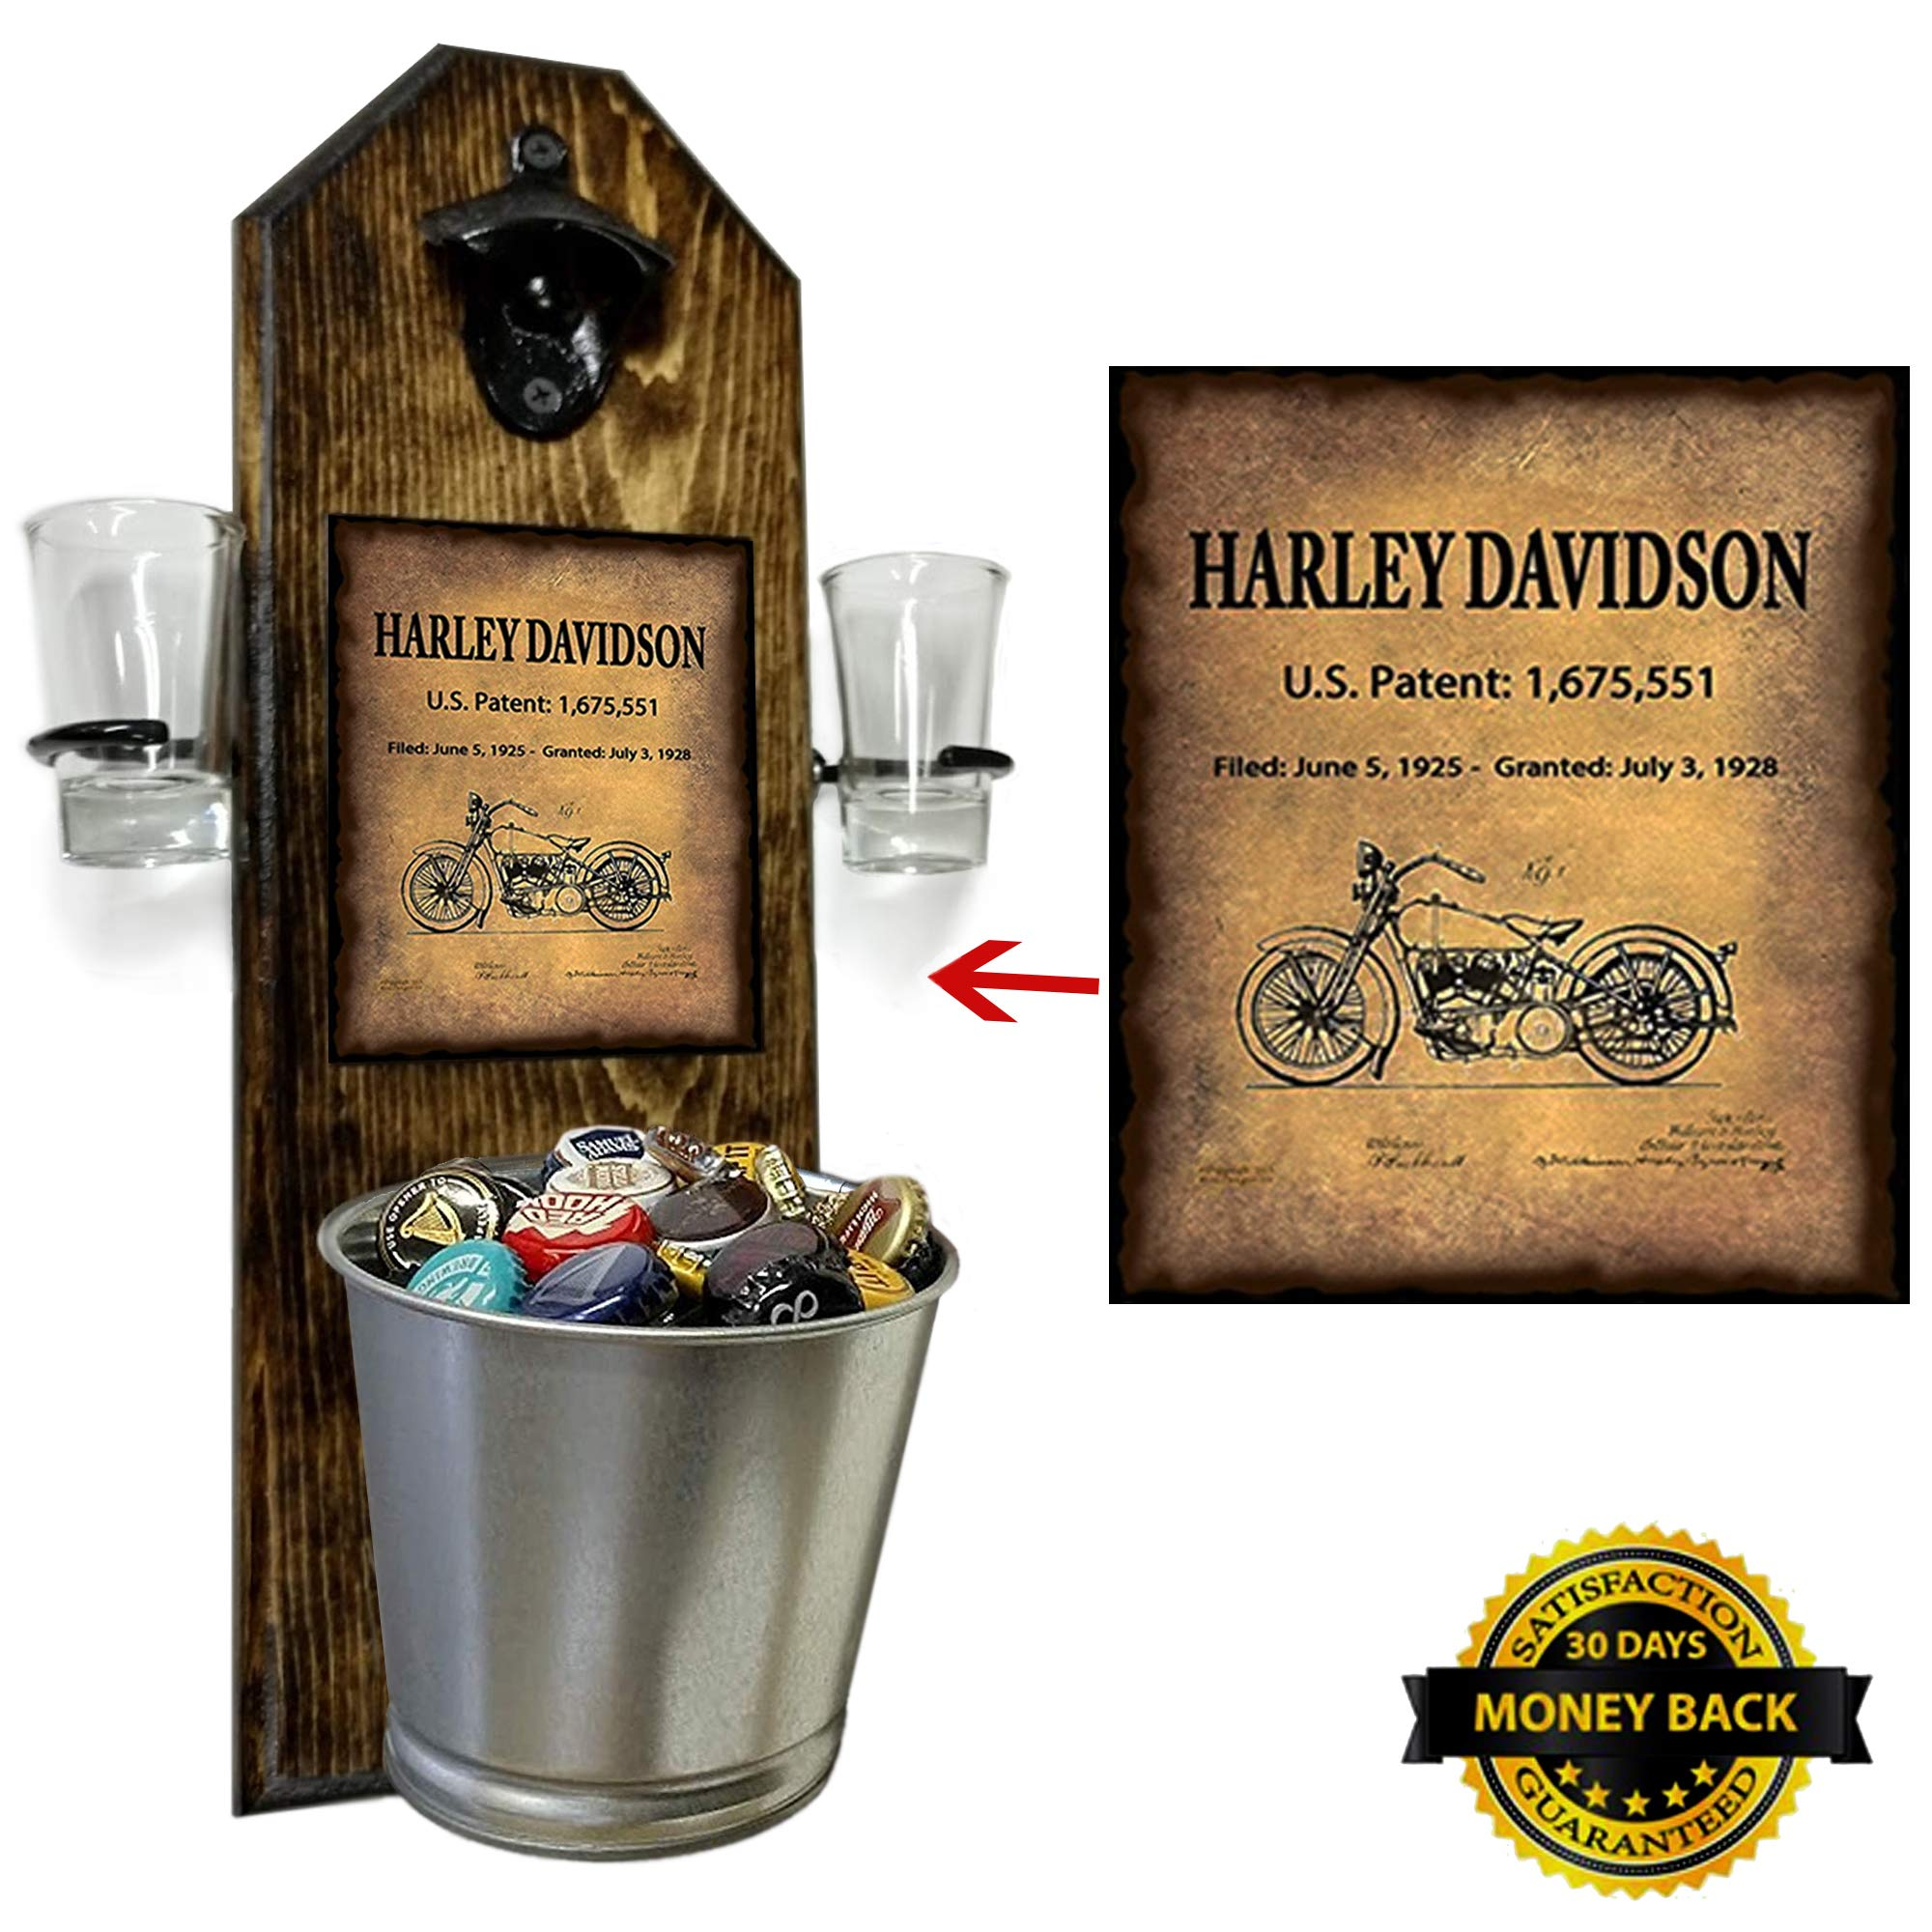 Deluxe Harley Davidson Patent Shot Glass Holder with 2 Shot Glasses, Bottle Opener and Cap Catcher - Handcrafted by a Vet - 100% Solid Pine 3/4'' Thick - Cast Iron Bottle Opener and Galvanized Bucket by CherryPic Junction